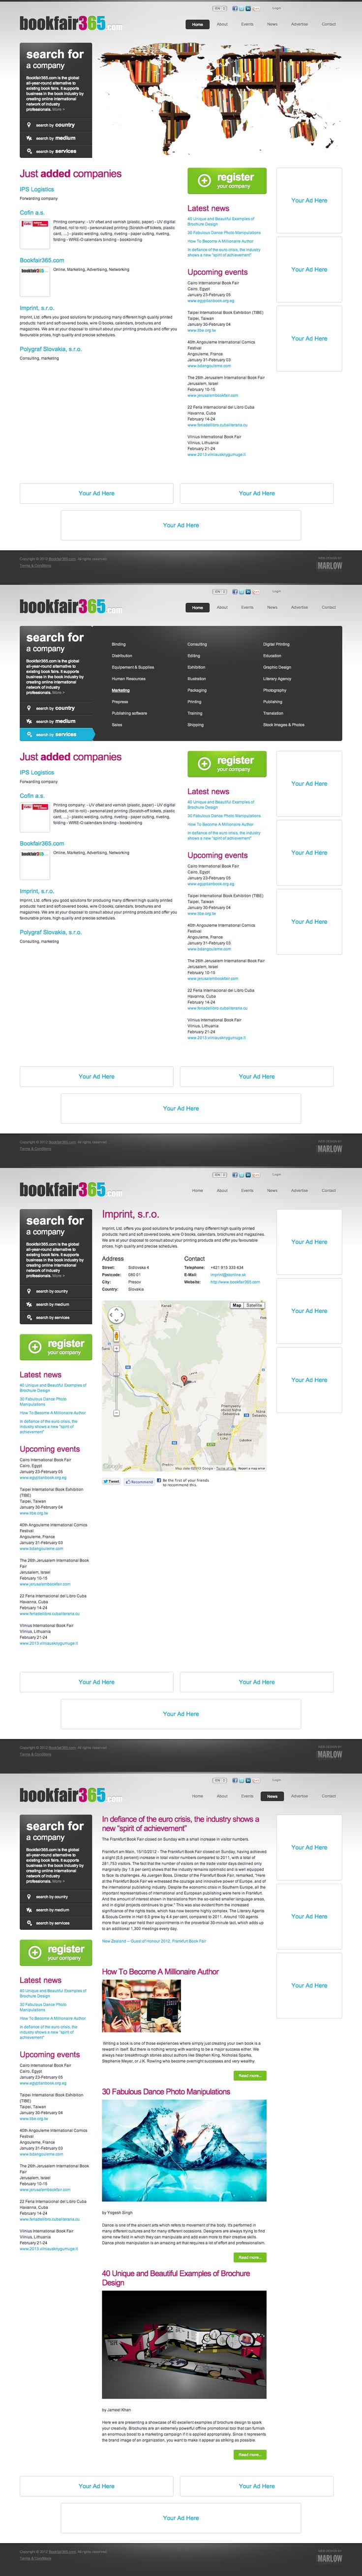 Web design - Bookfair365.com